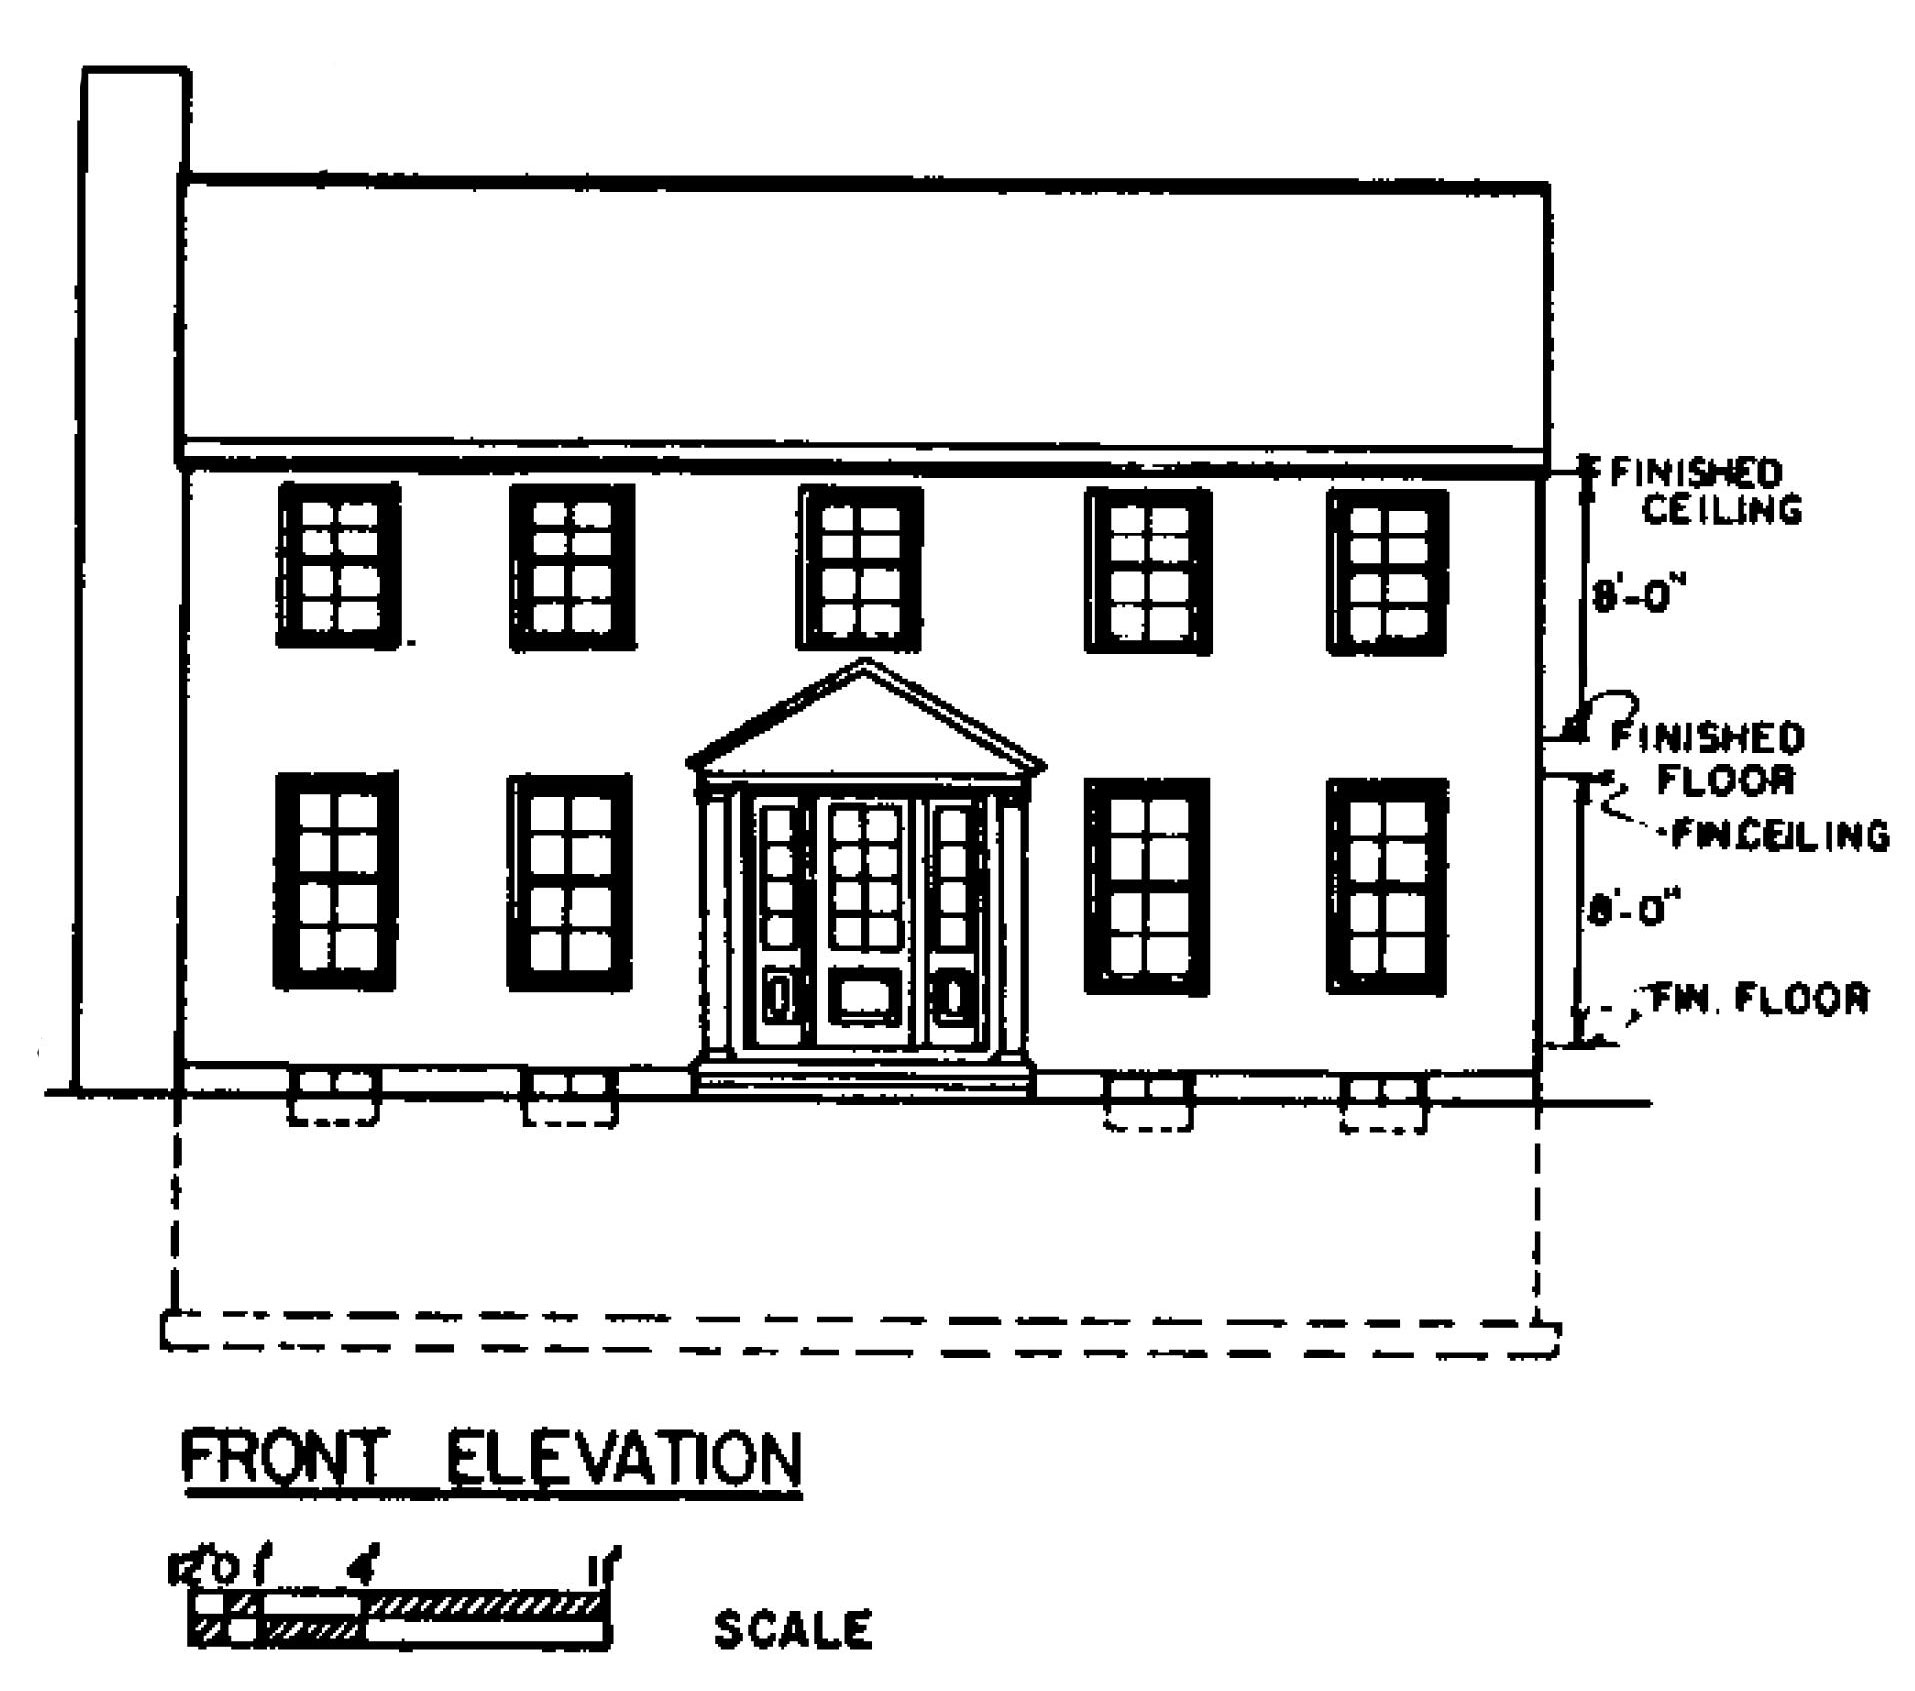 Front Elevation Floor Plan : Free colonial house plans floor